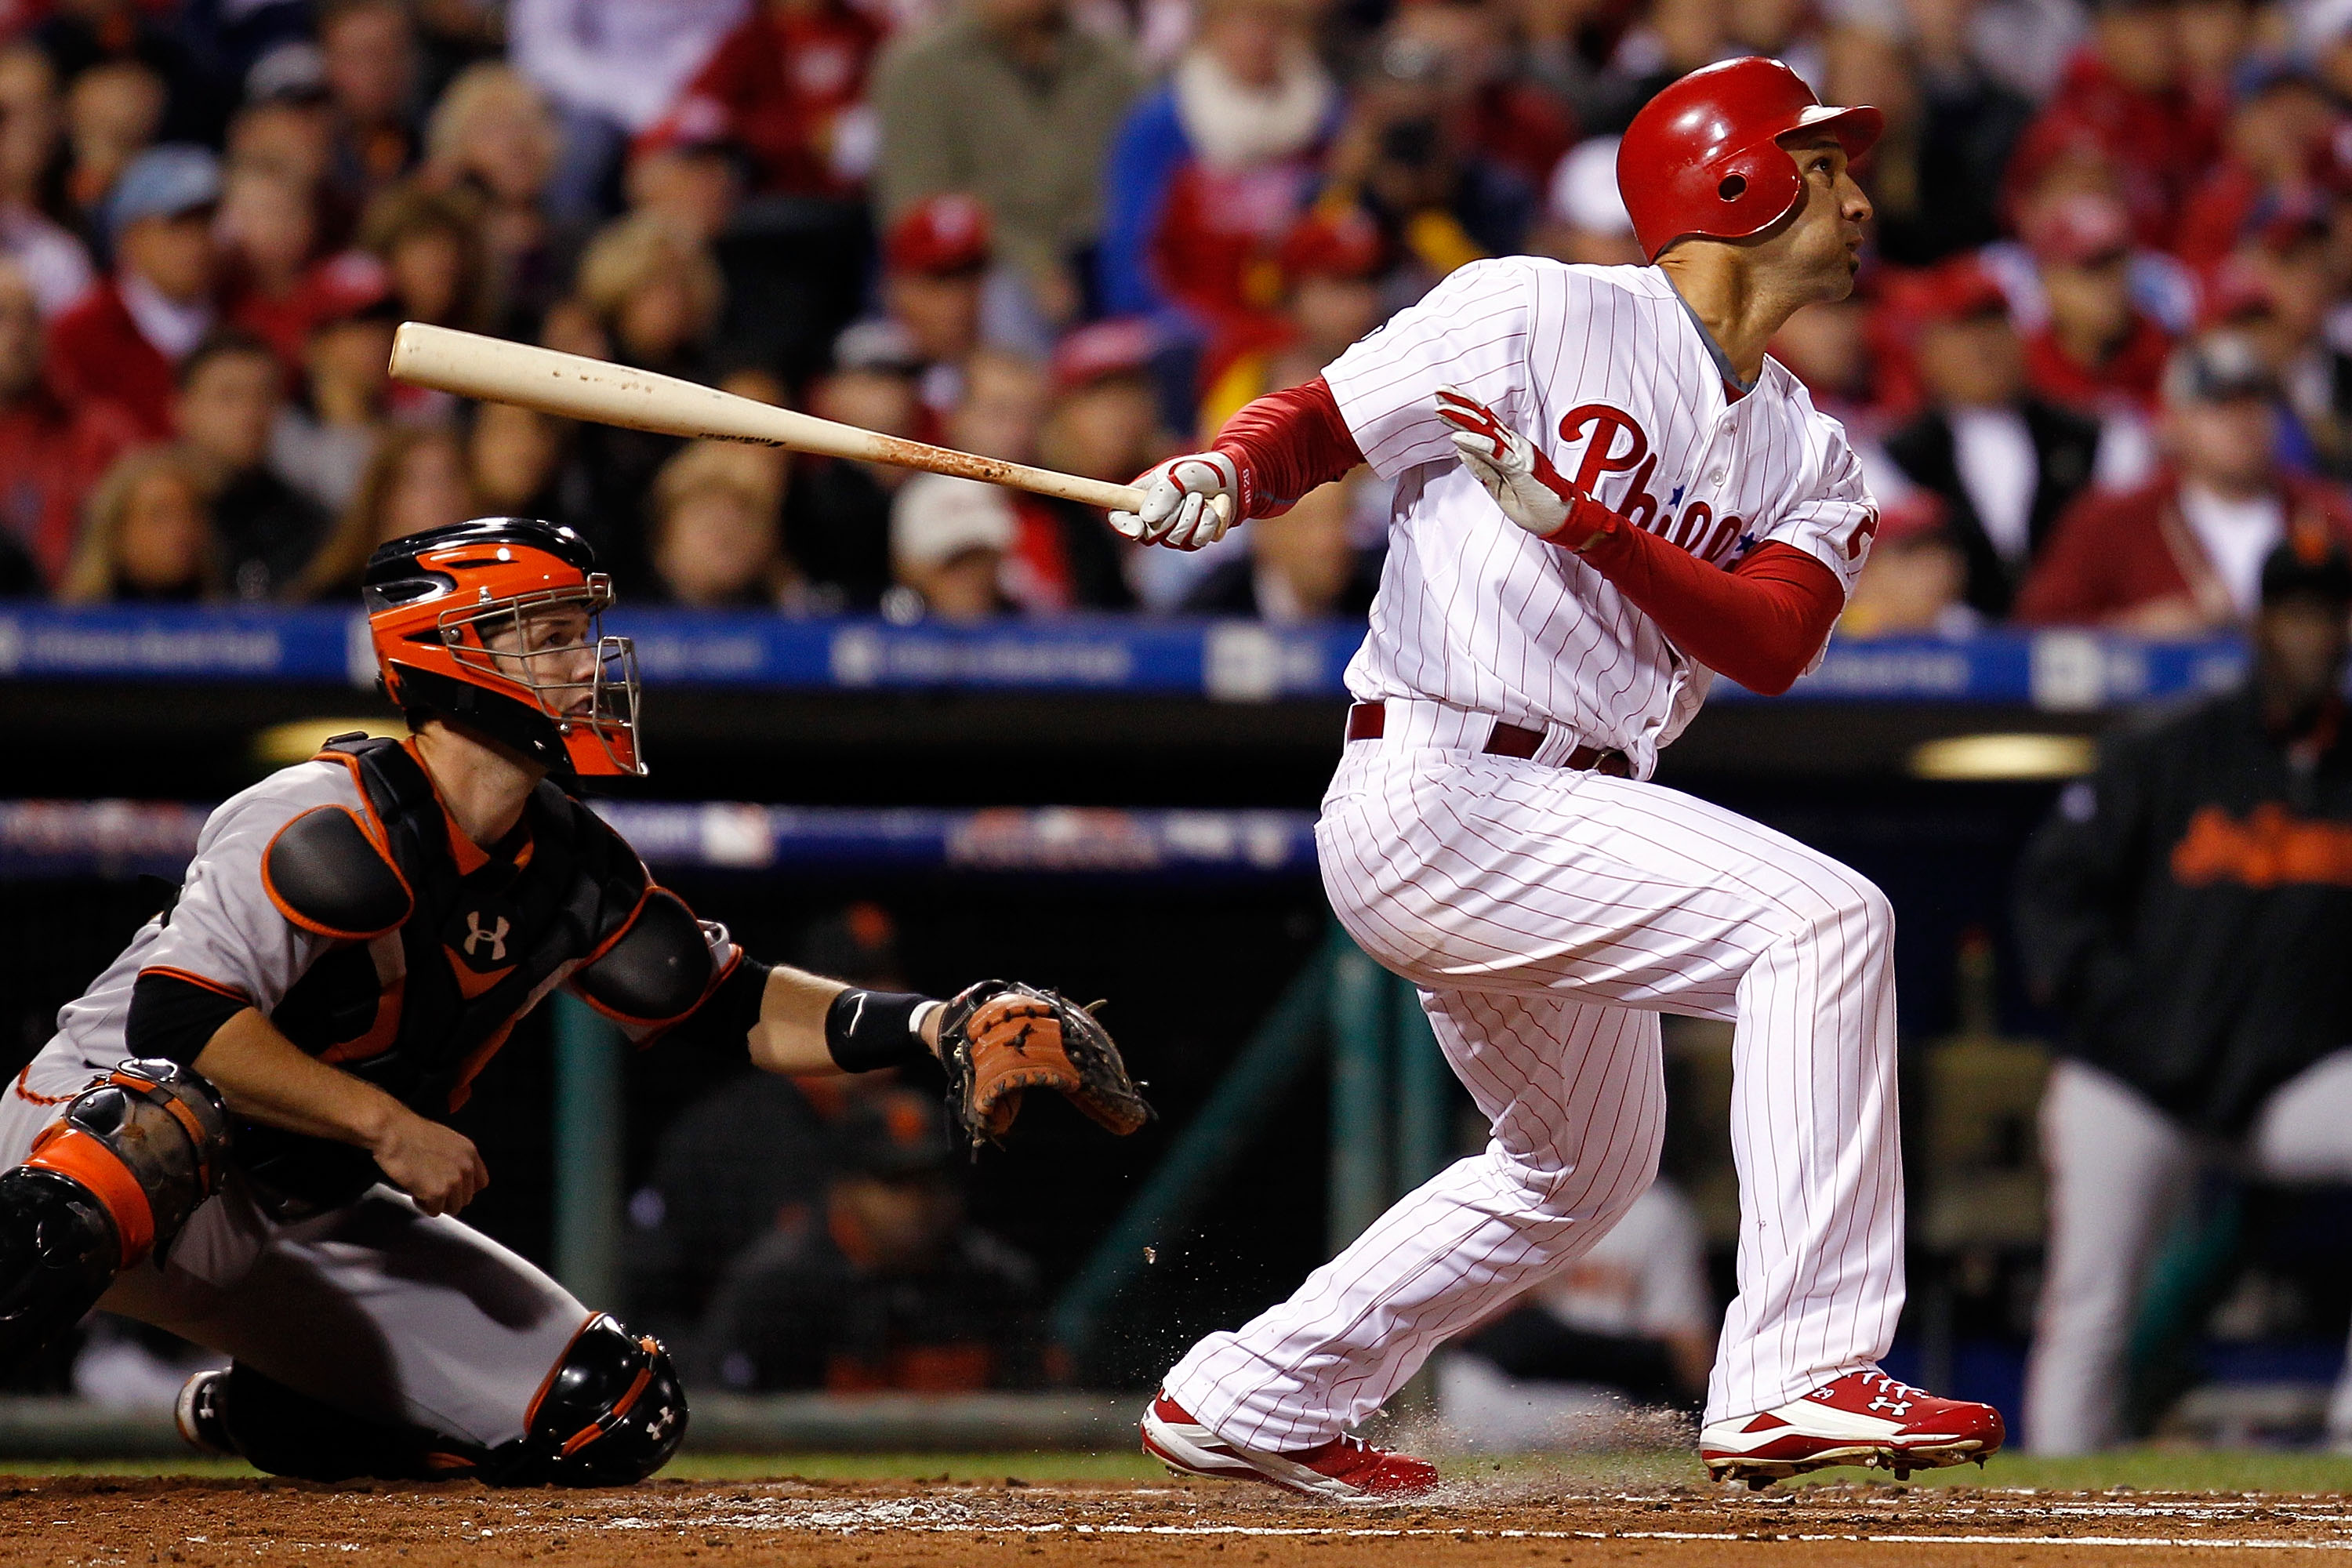 PHILADELPHIA - OCTOBER 16:  Raul Ibanez #29 of the Philadelphia Phillies at bat against the San Francisco Giants in Game One of the NLCS during the 2010 MLB Playoffs at Citizens Bank Park on October 16, 2010 in Philadelphia, Pennsylvania.  (Photo by Jeff